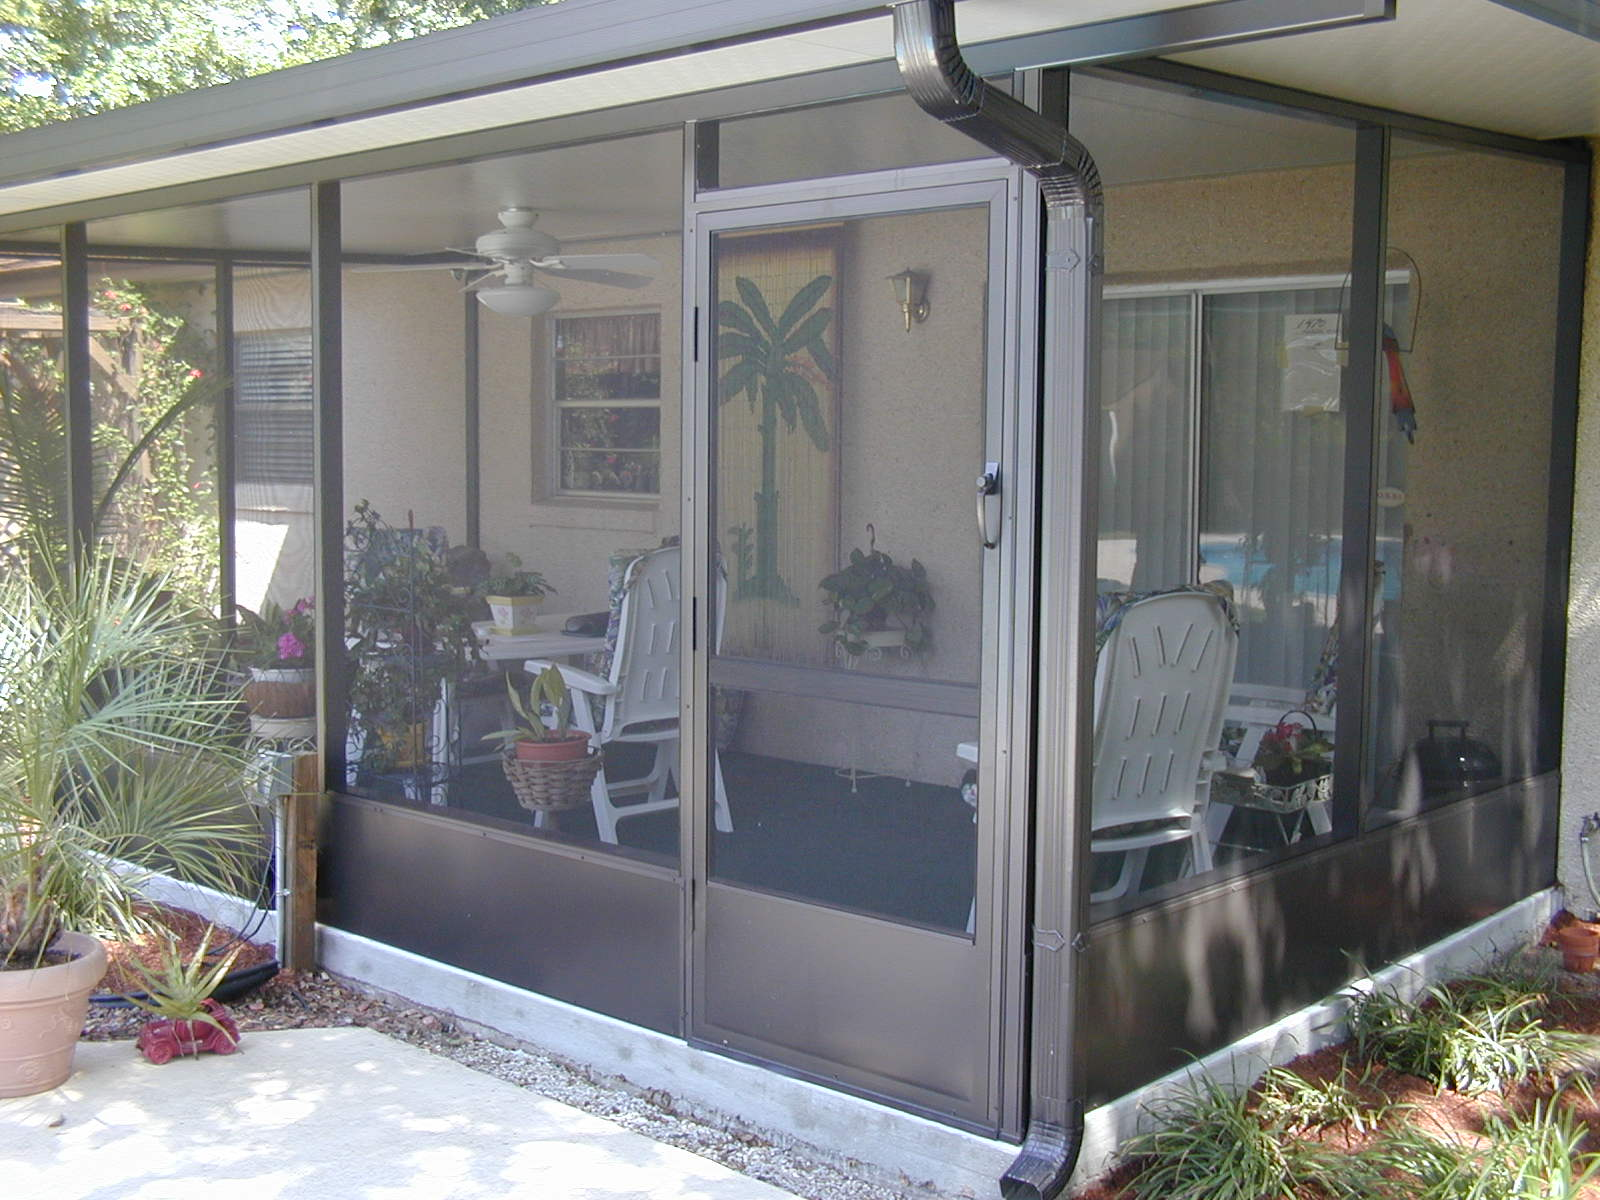 Aluminum room made by kwikscreen